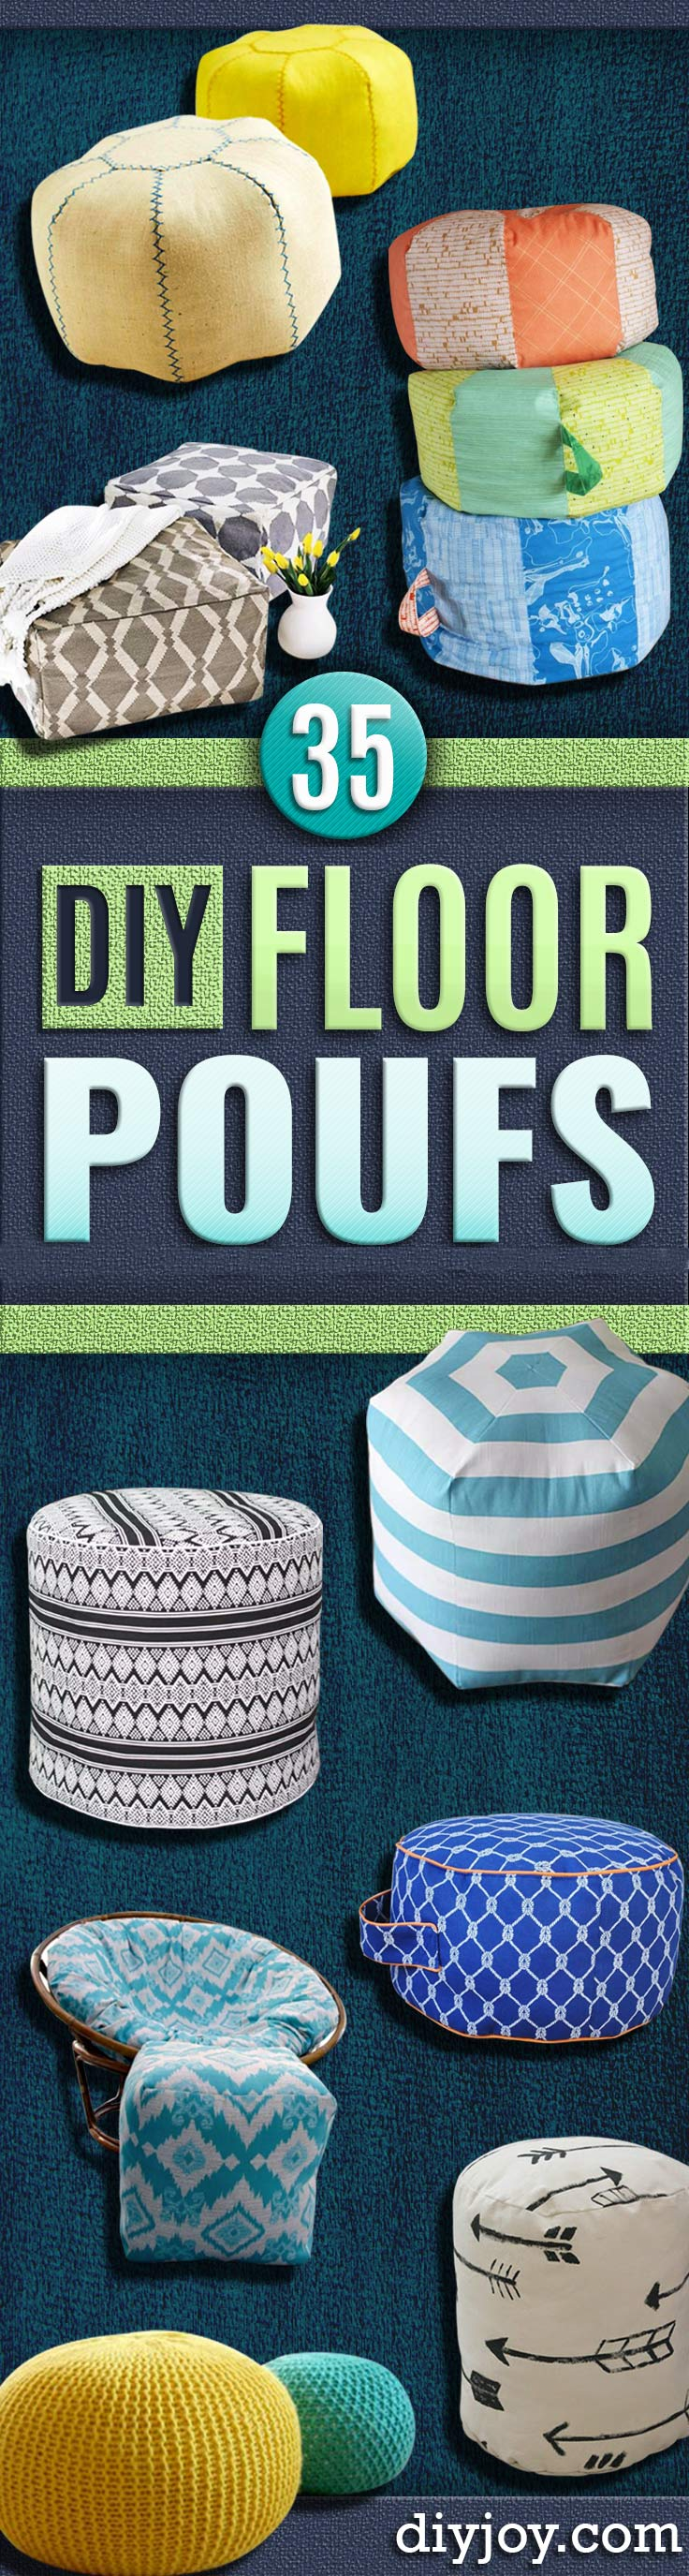 DIY Poufs and Ottomans - Step by Step Tutorials and Easy Patterns for Cool Home Decor. Crochet, No Sew, Leather, Moroccan Boho, Knit and Fun Fur Projects and Chair Ideas for Living Room #diy #furniture #livingroom